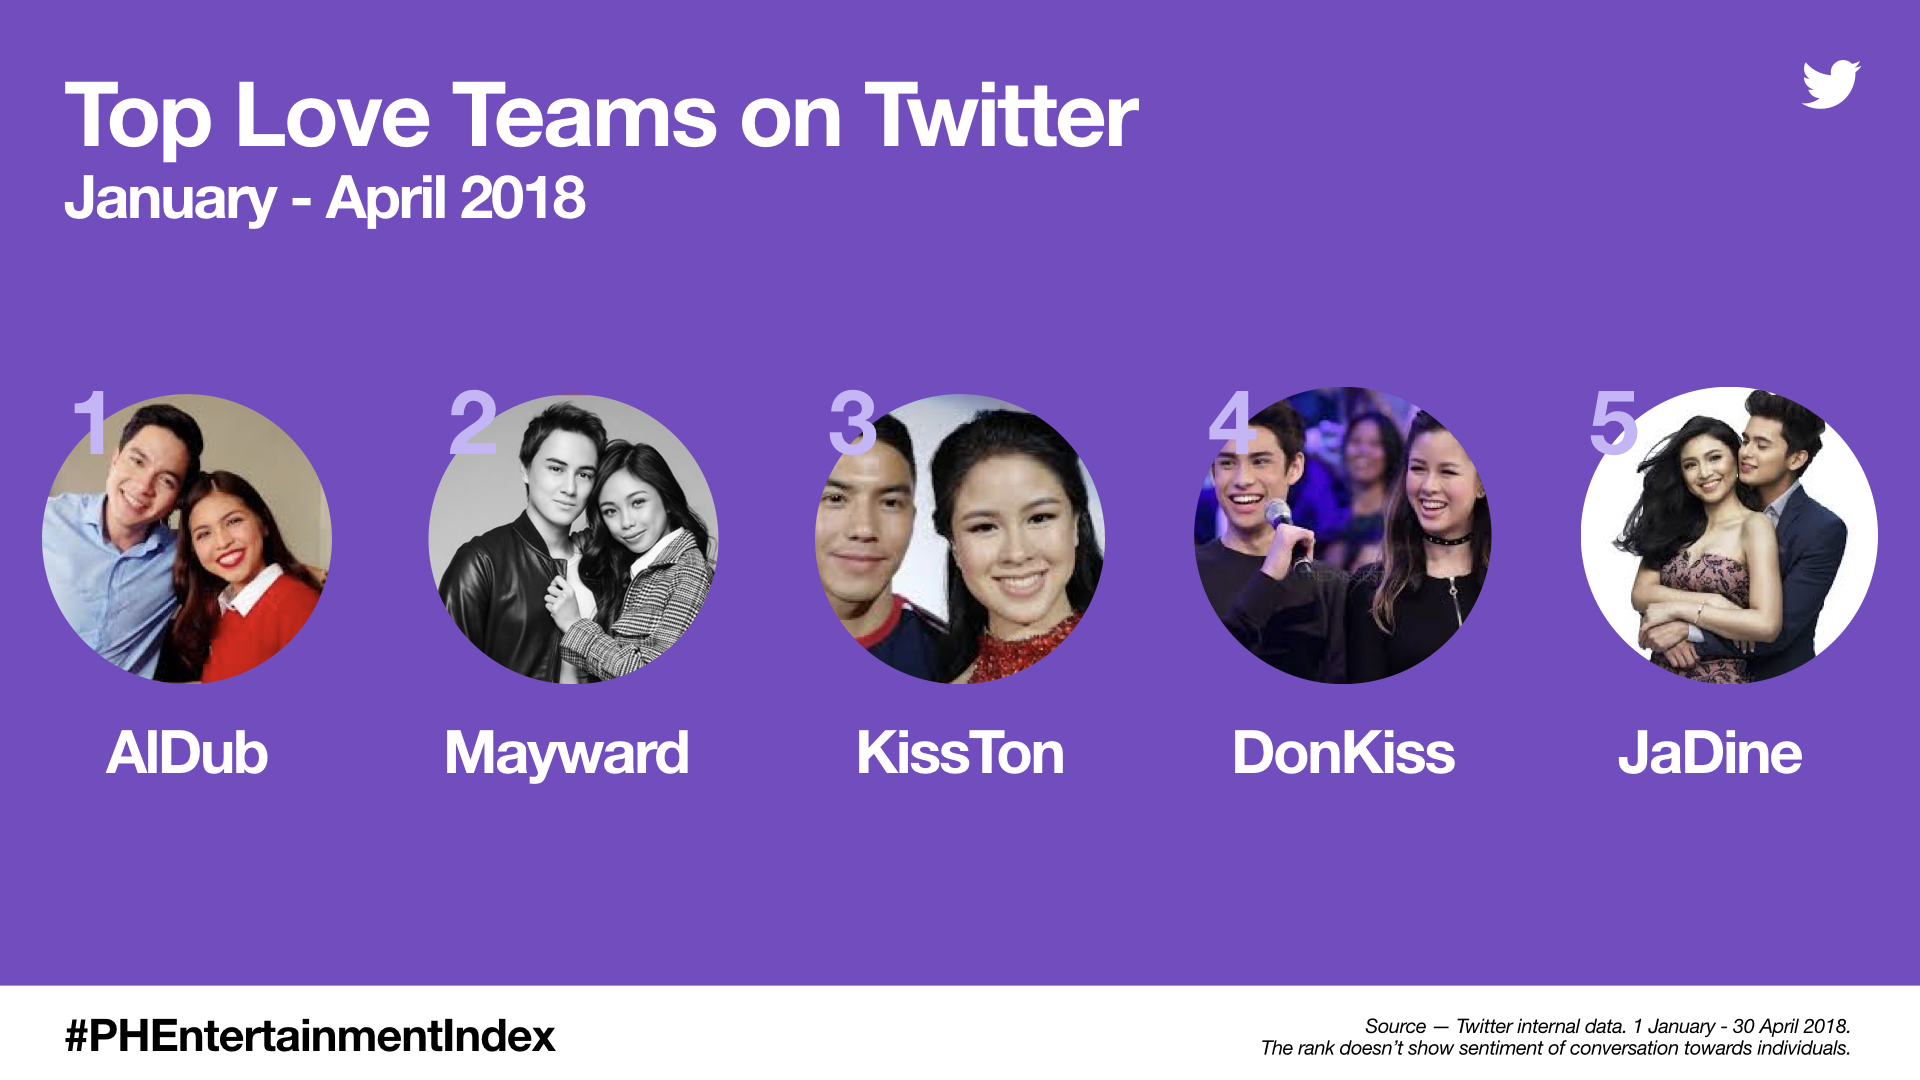 Top Love Teams on Twitter